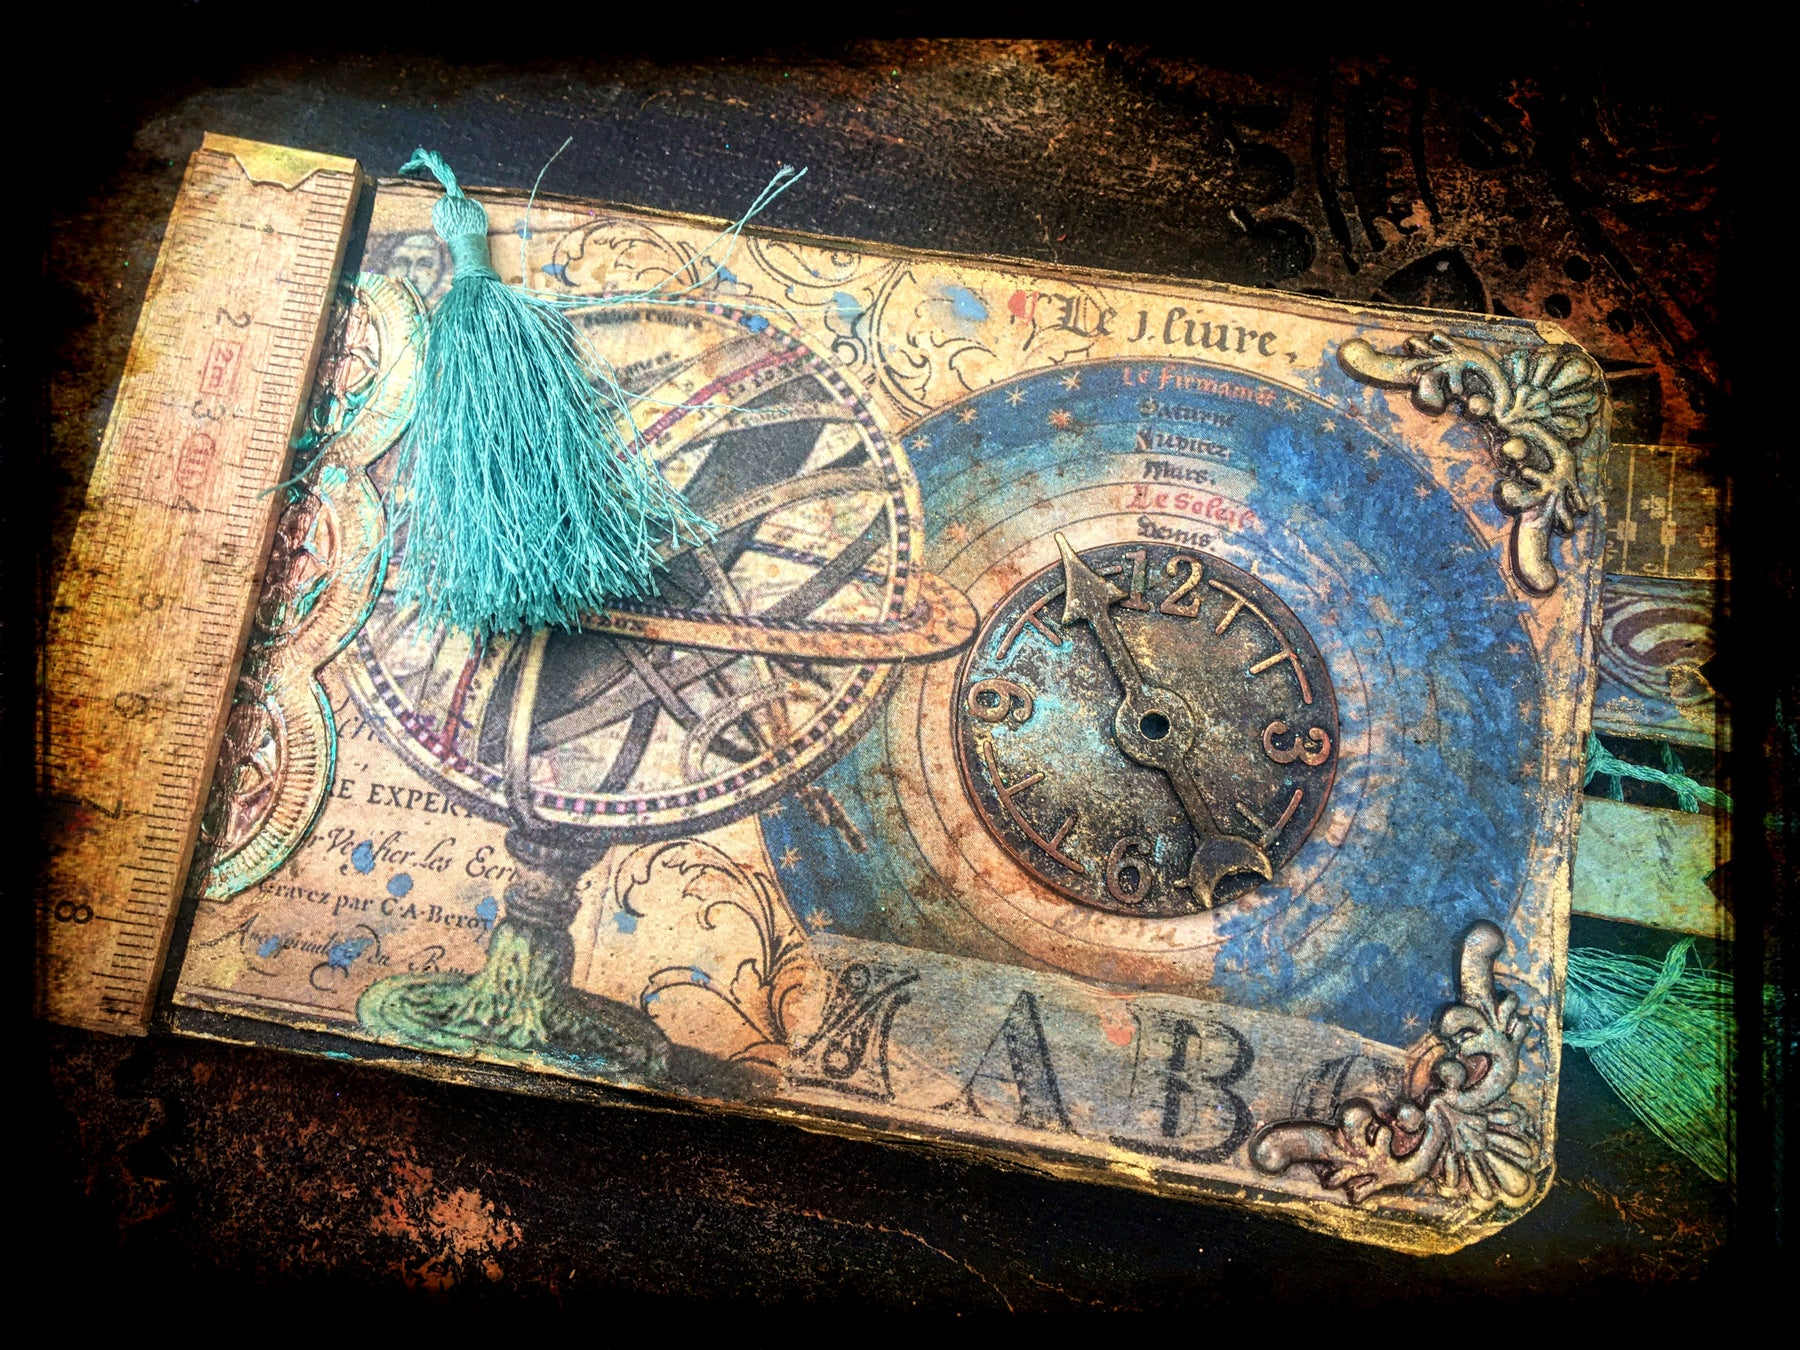 Alchemy: Mini tag book by LOUISE CROSBIE